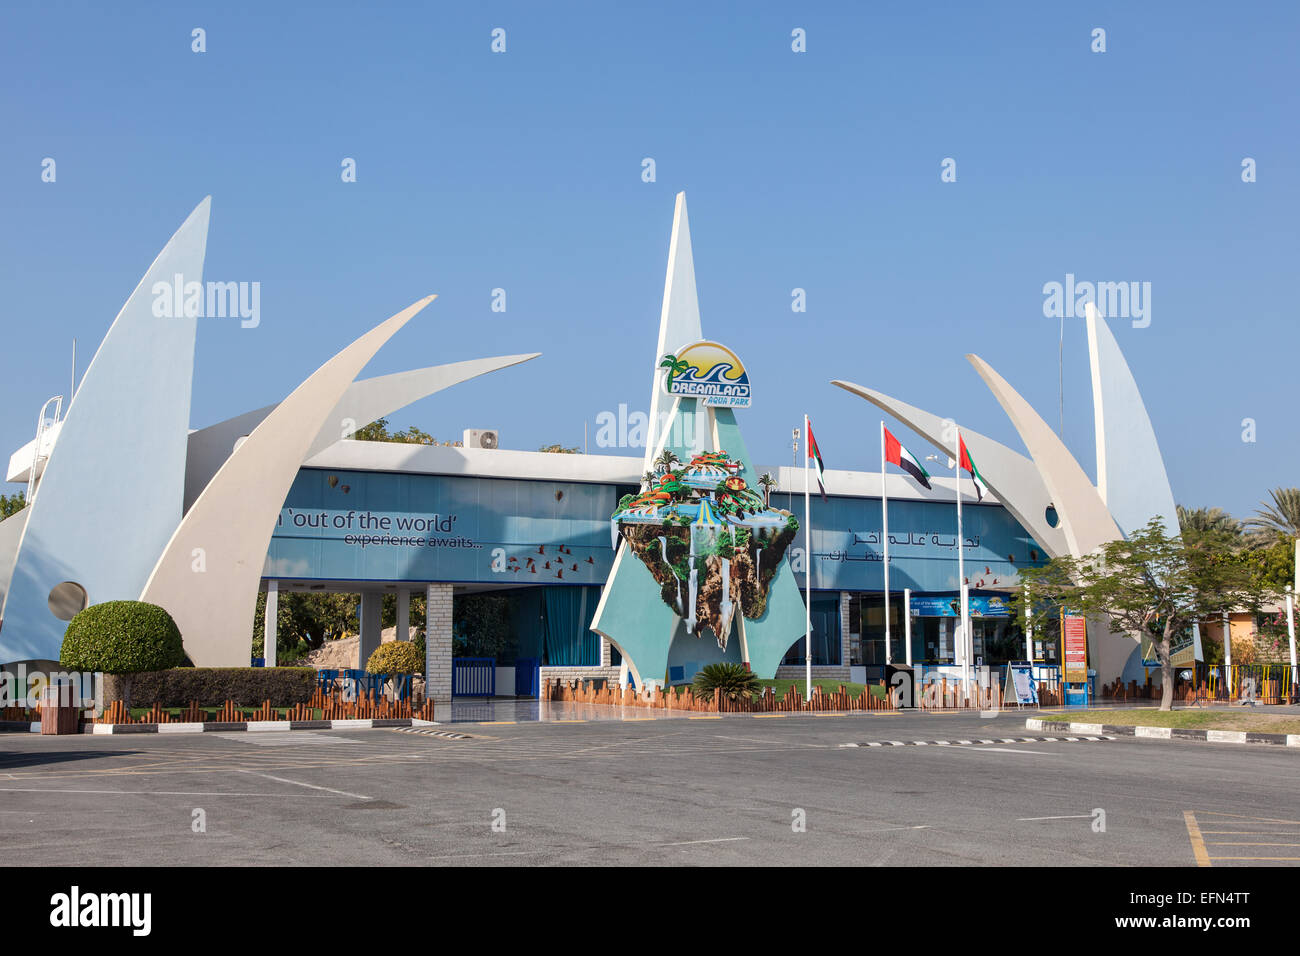 dreamland aqua park the largest water park in the uae is